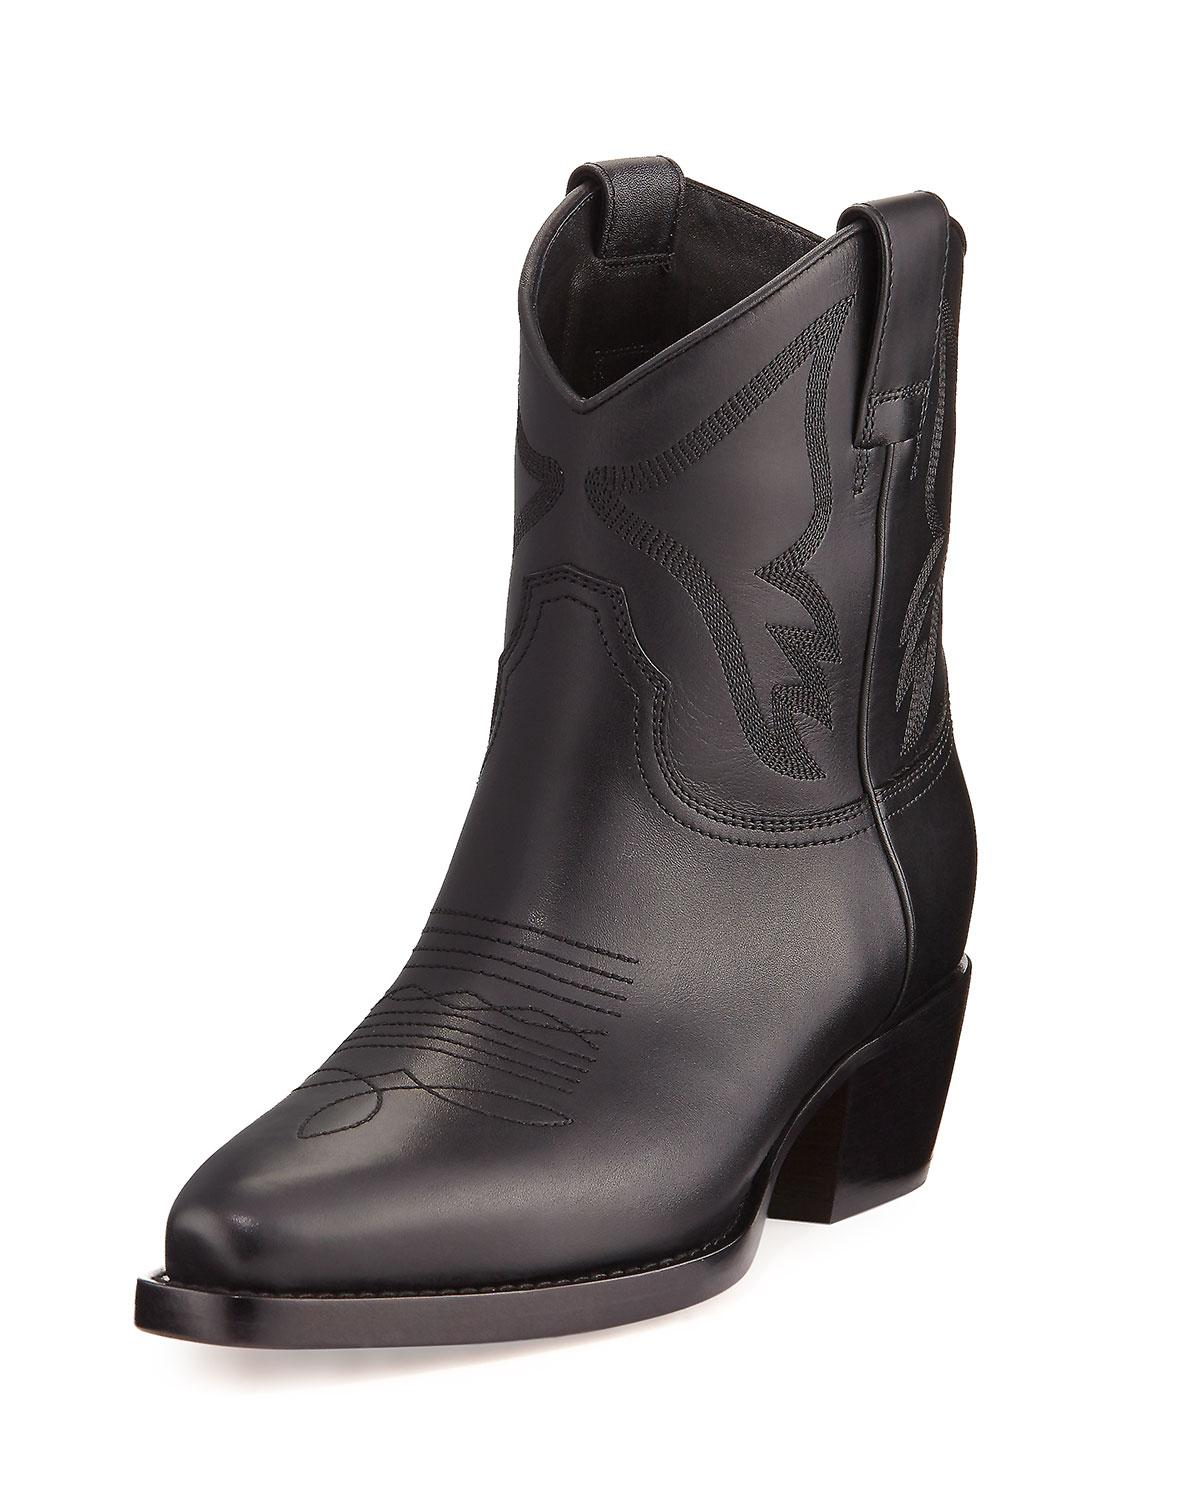 Valentino Leather Cowboy Boots sneakernews for sale agh4F